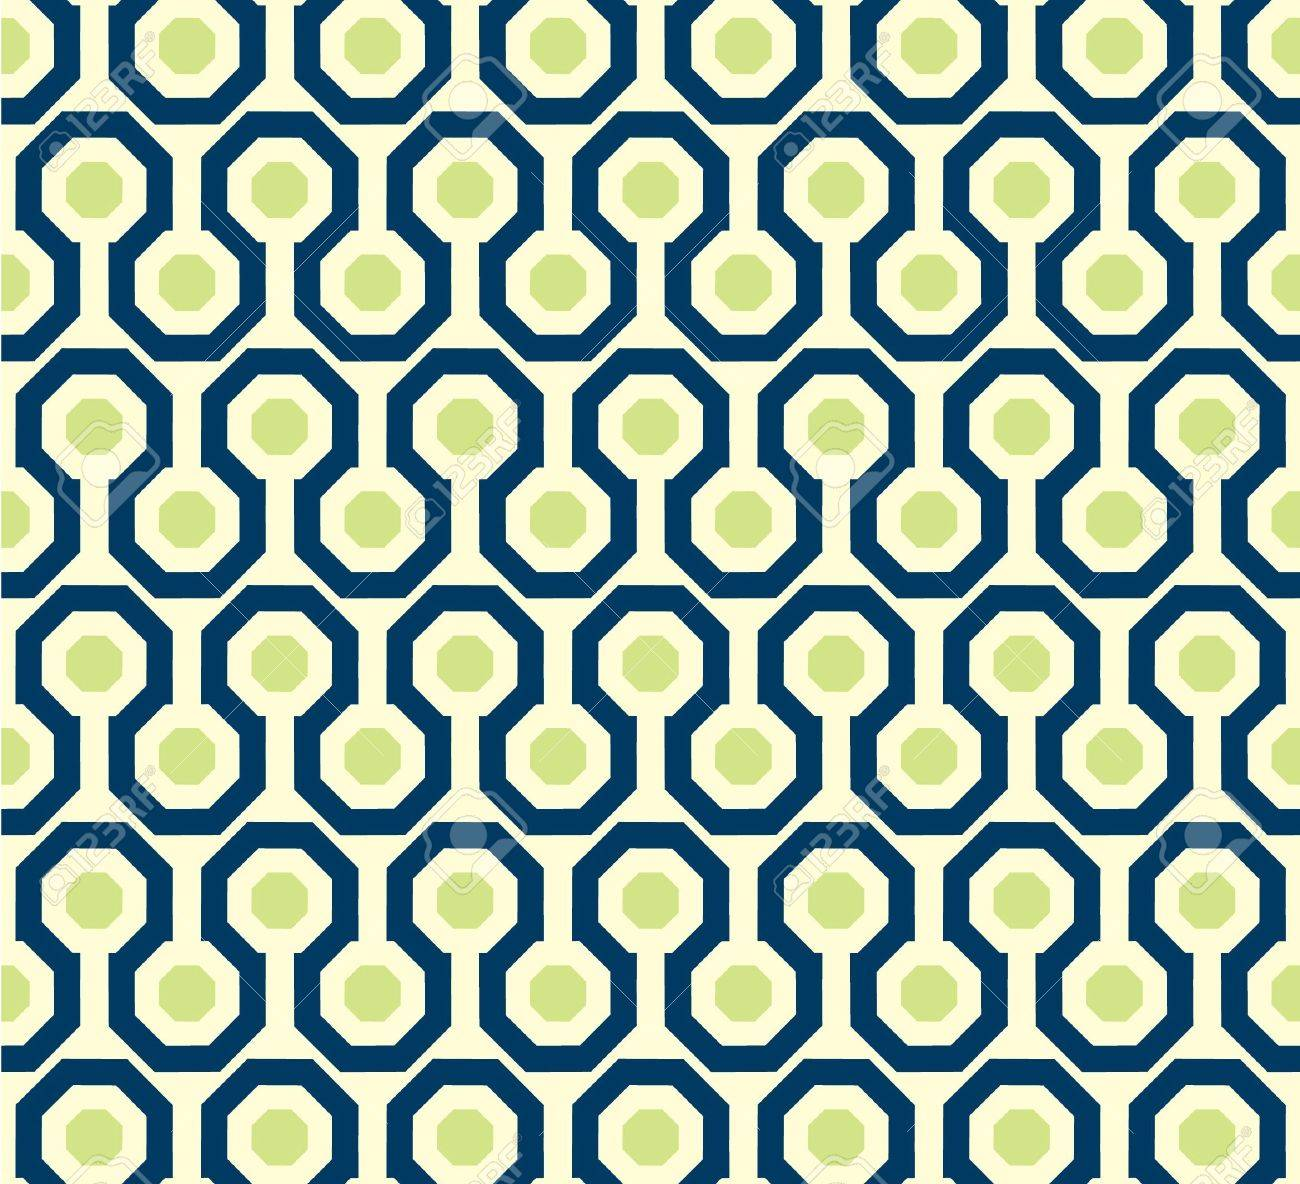 Zig zag pattern in green and blue  Seamless vector illustration Stock Vector - 15065109